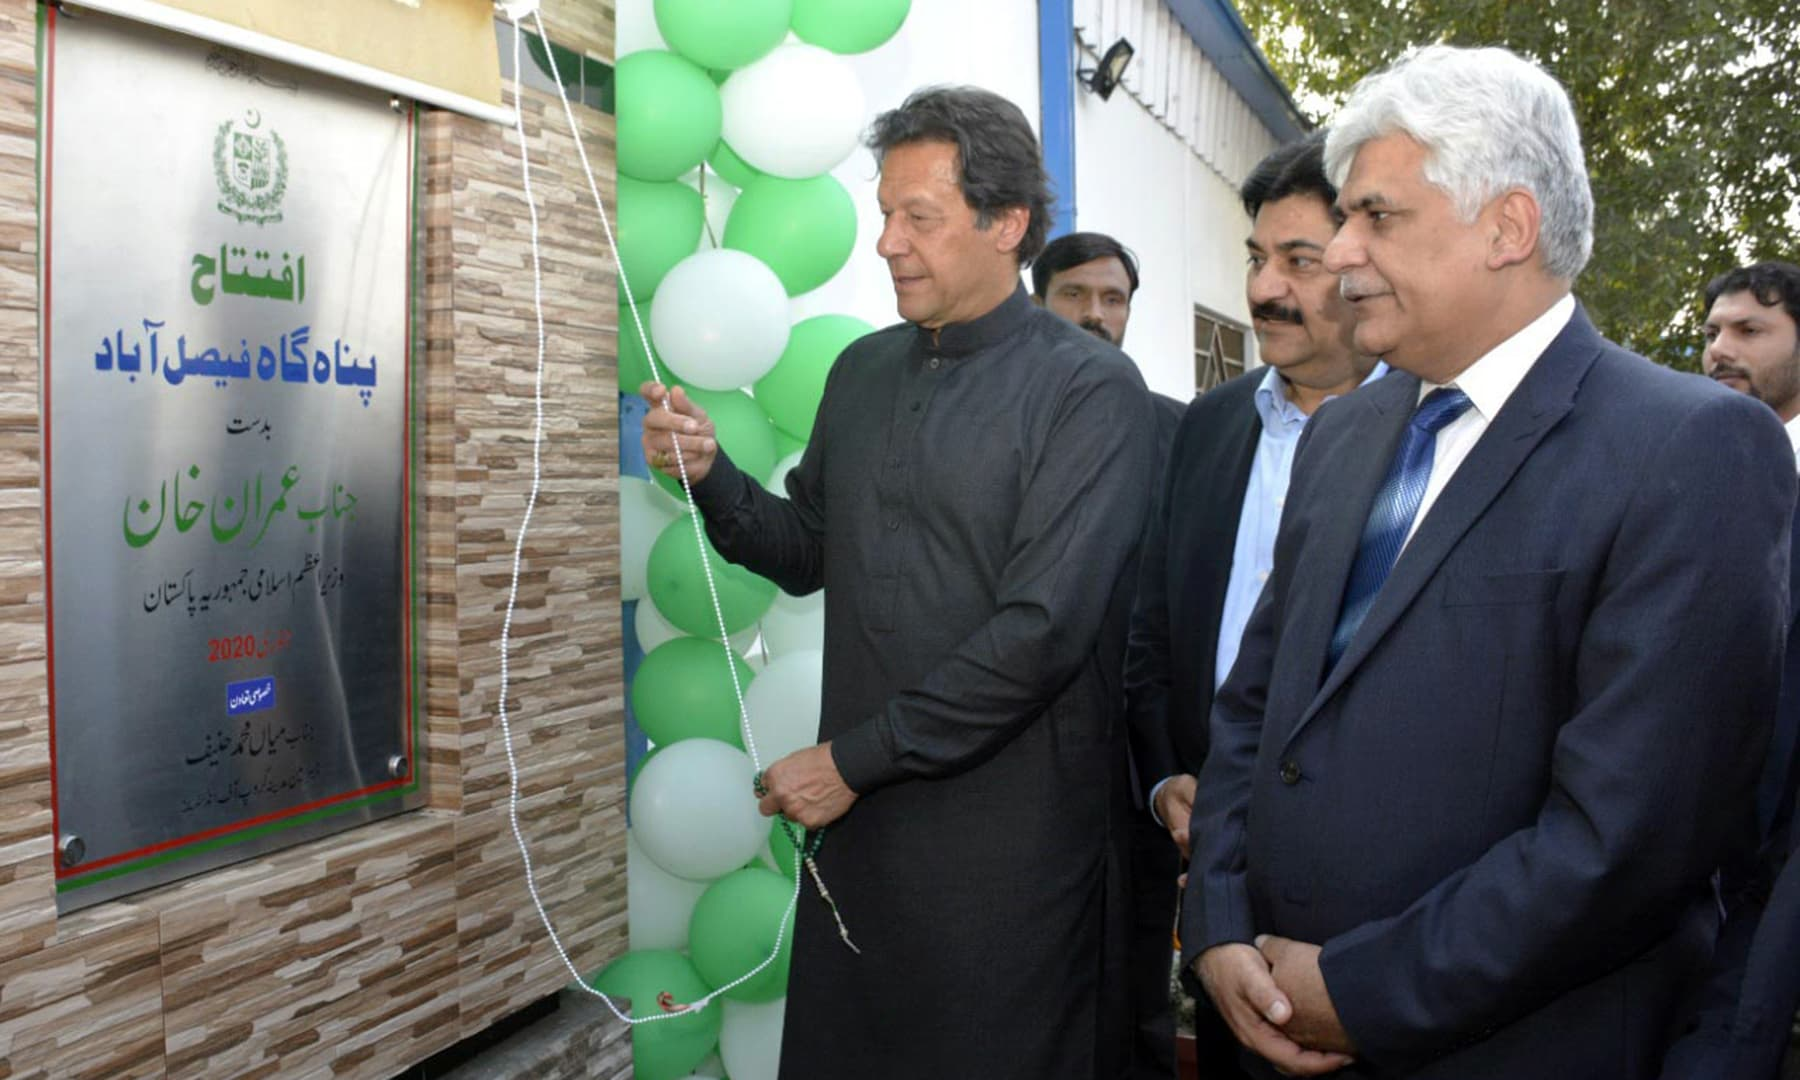 Prime Minister Imran Khan unveiling the inaugural plaque of Panahgah in Faisalabad on Friday. — PID